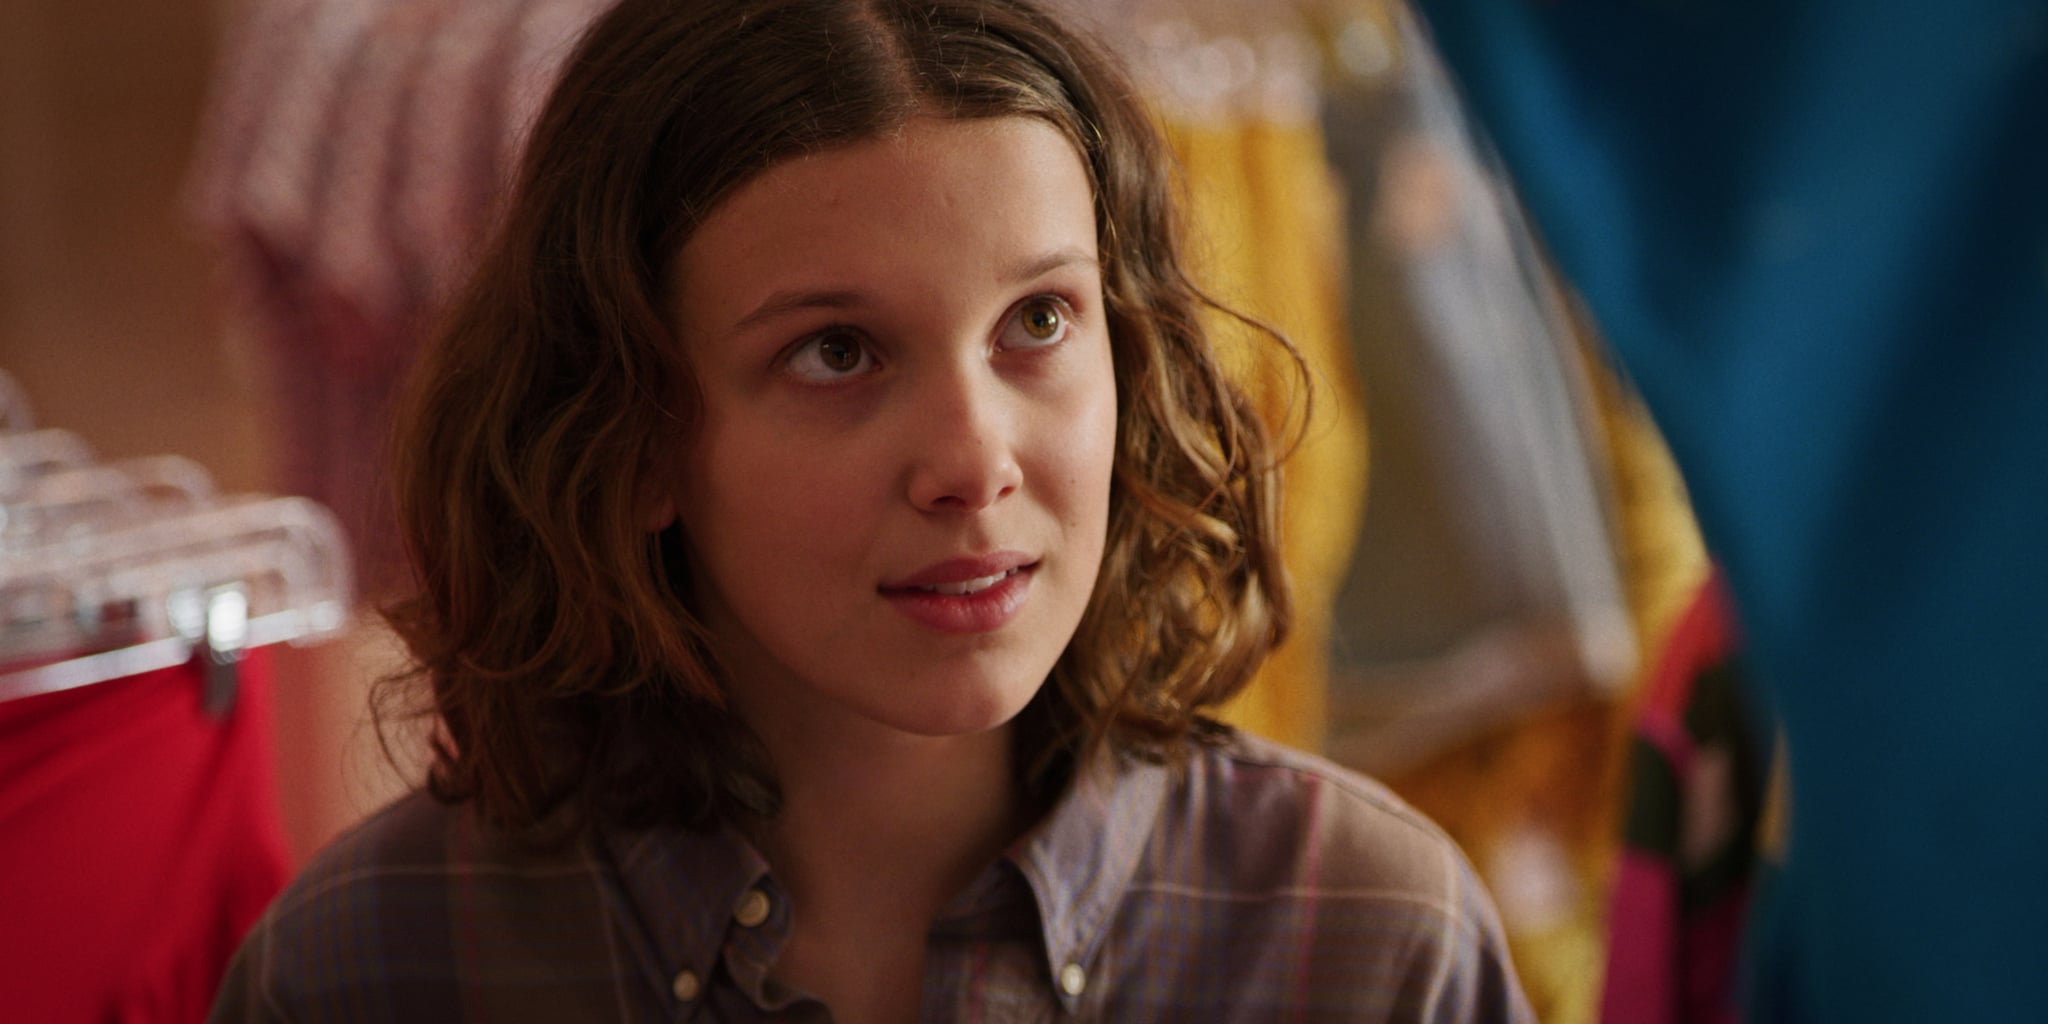 Stranger things character eleven